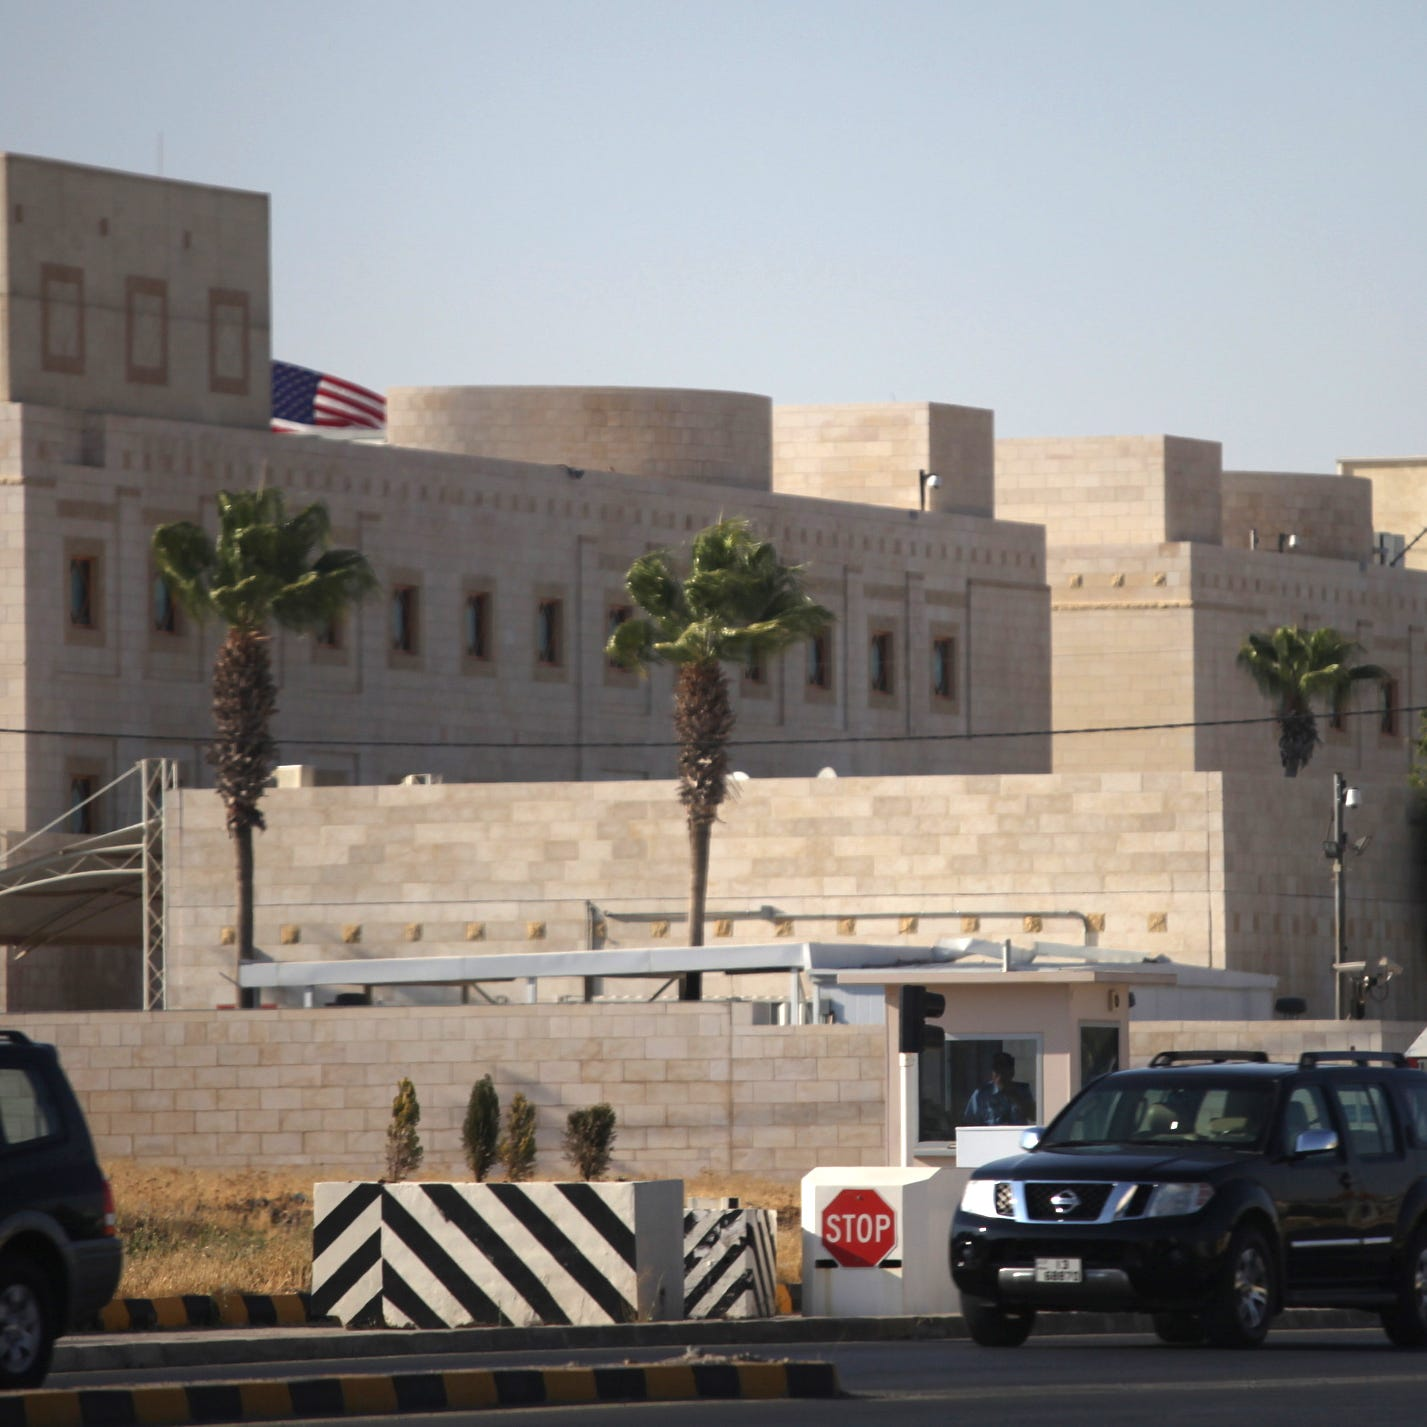 A general view of the U.S. embassy in Amman, Jordan, on Tuesday.